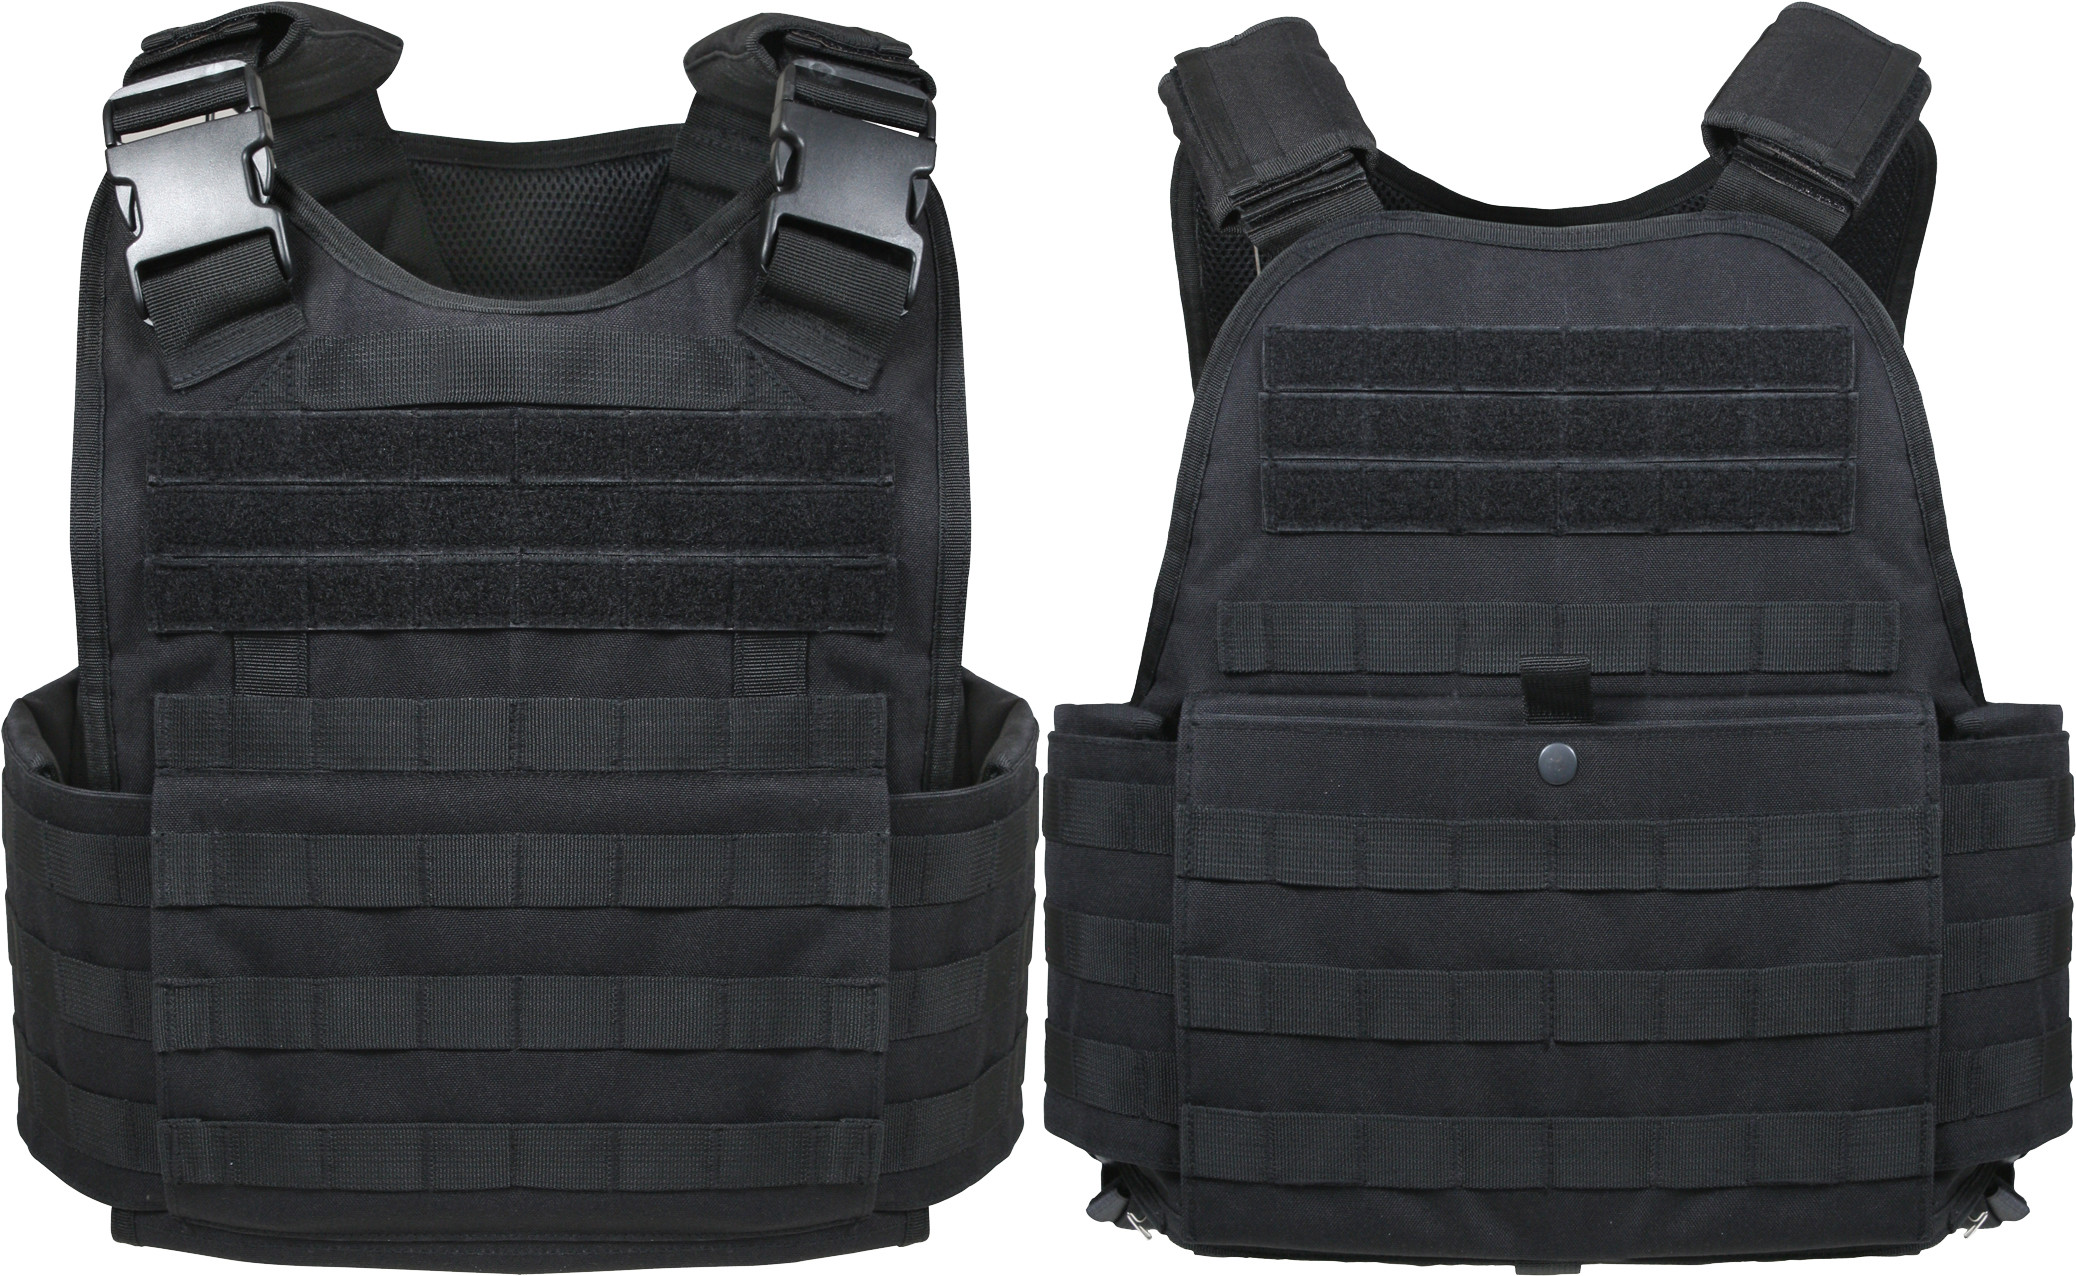 More Views. Black MOLLE Tactical Plate Carrier Assault Vest ... 52116cfda93